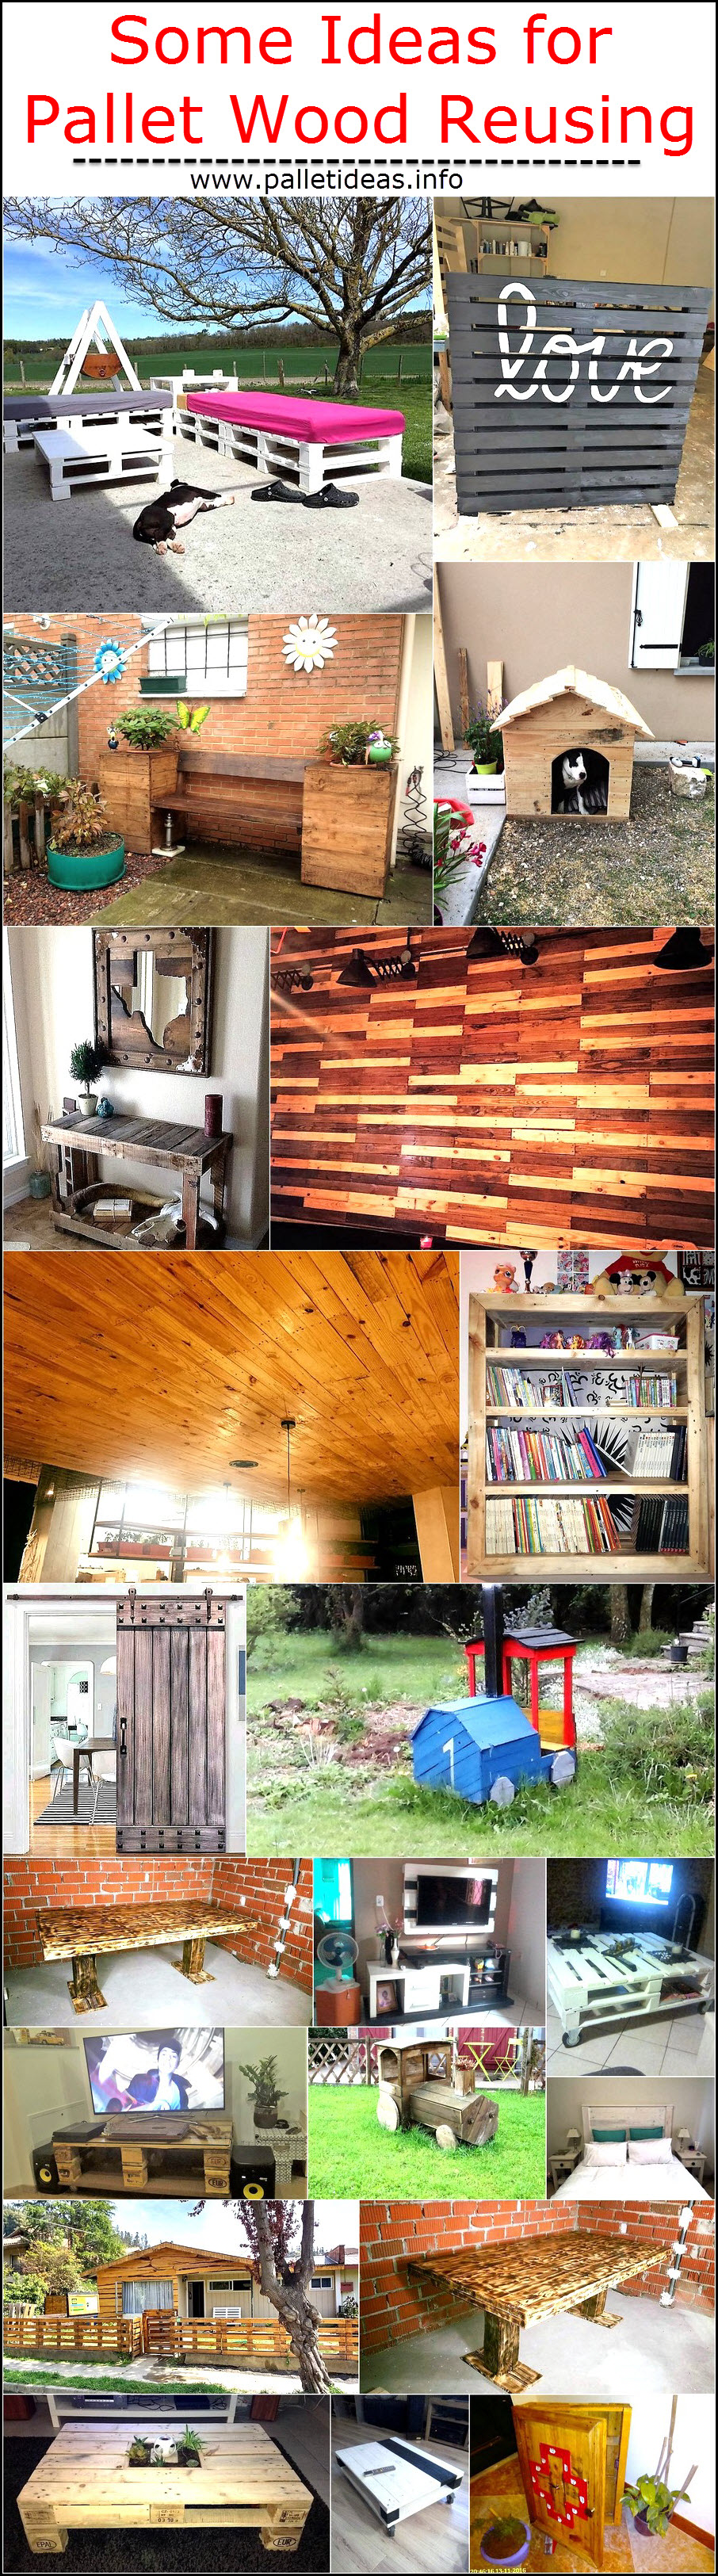 some-ideas-for-pallet-wood-reusing